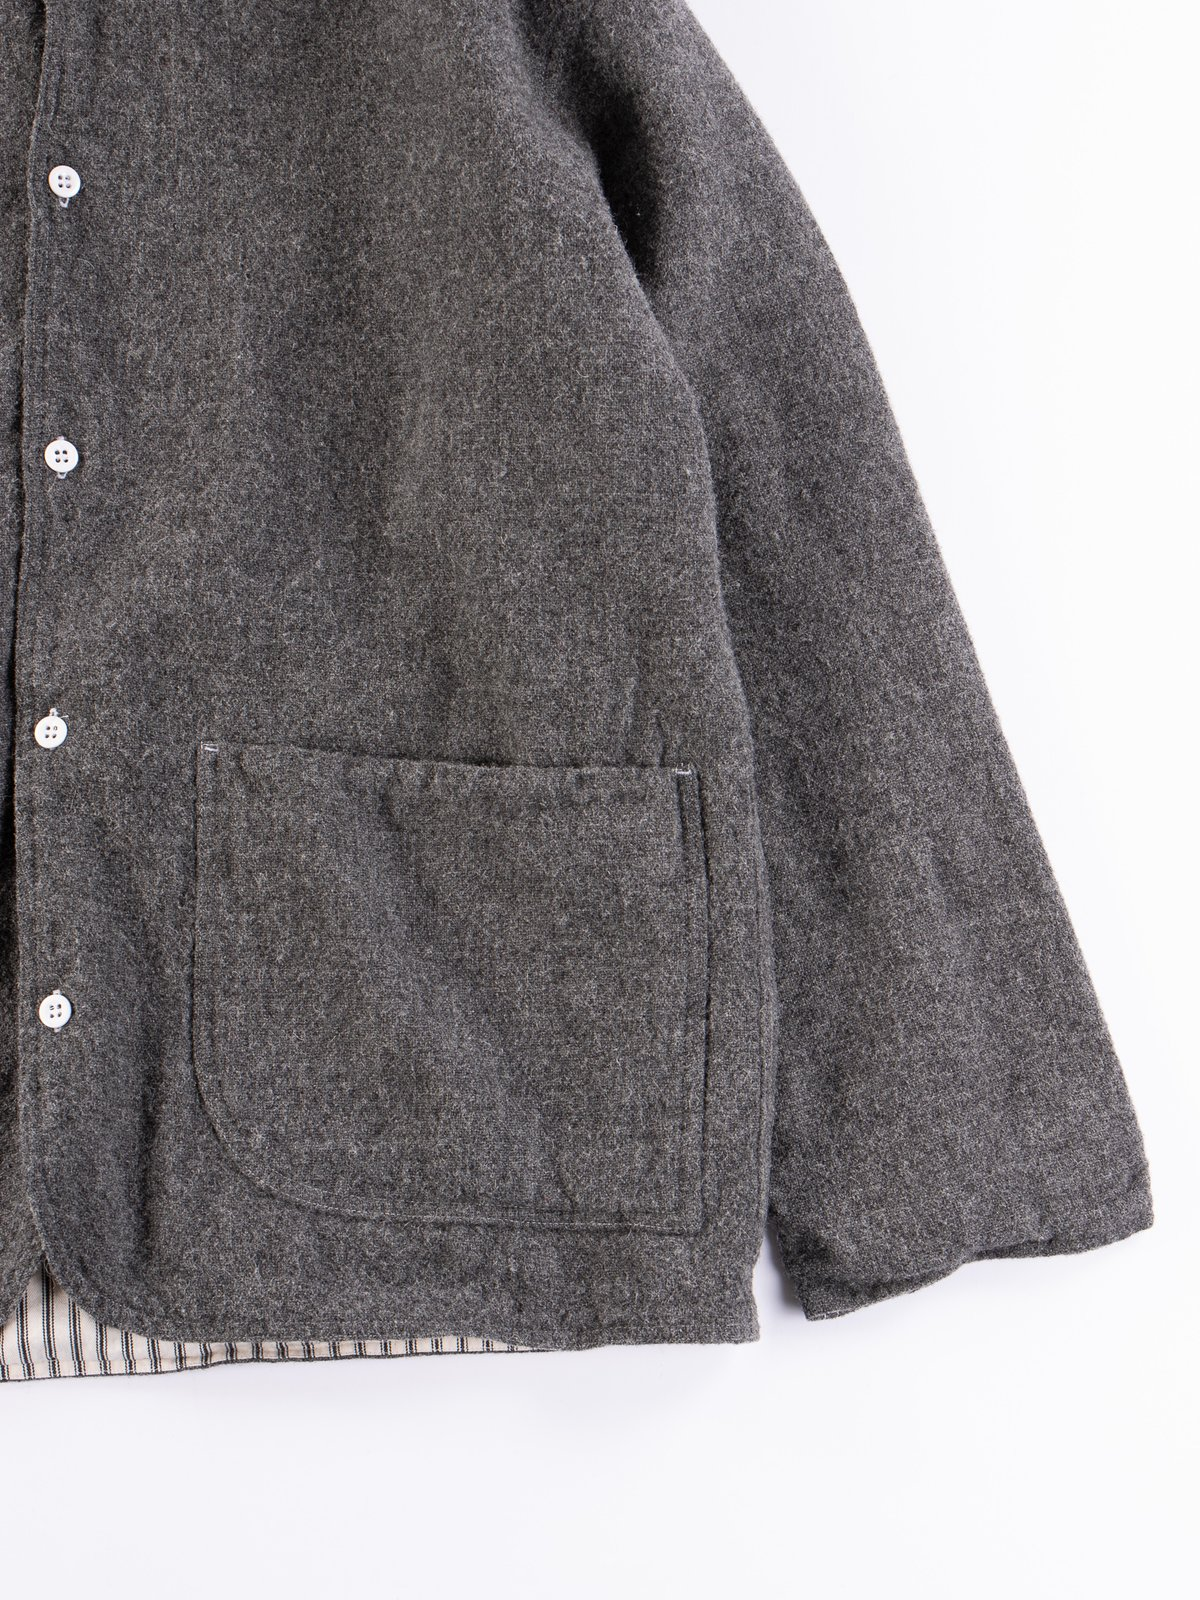 Charcoal Weavers Stock Curve Front Jacket - Image 4